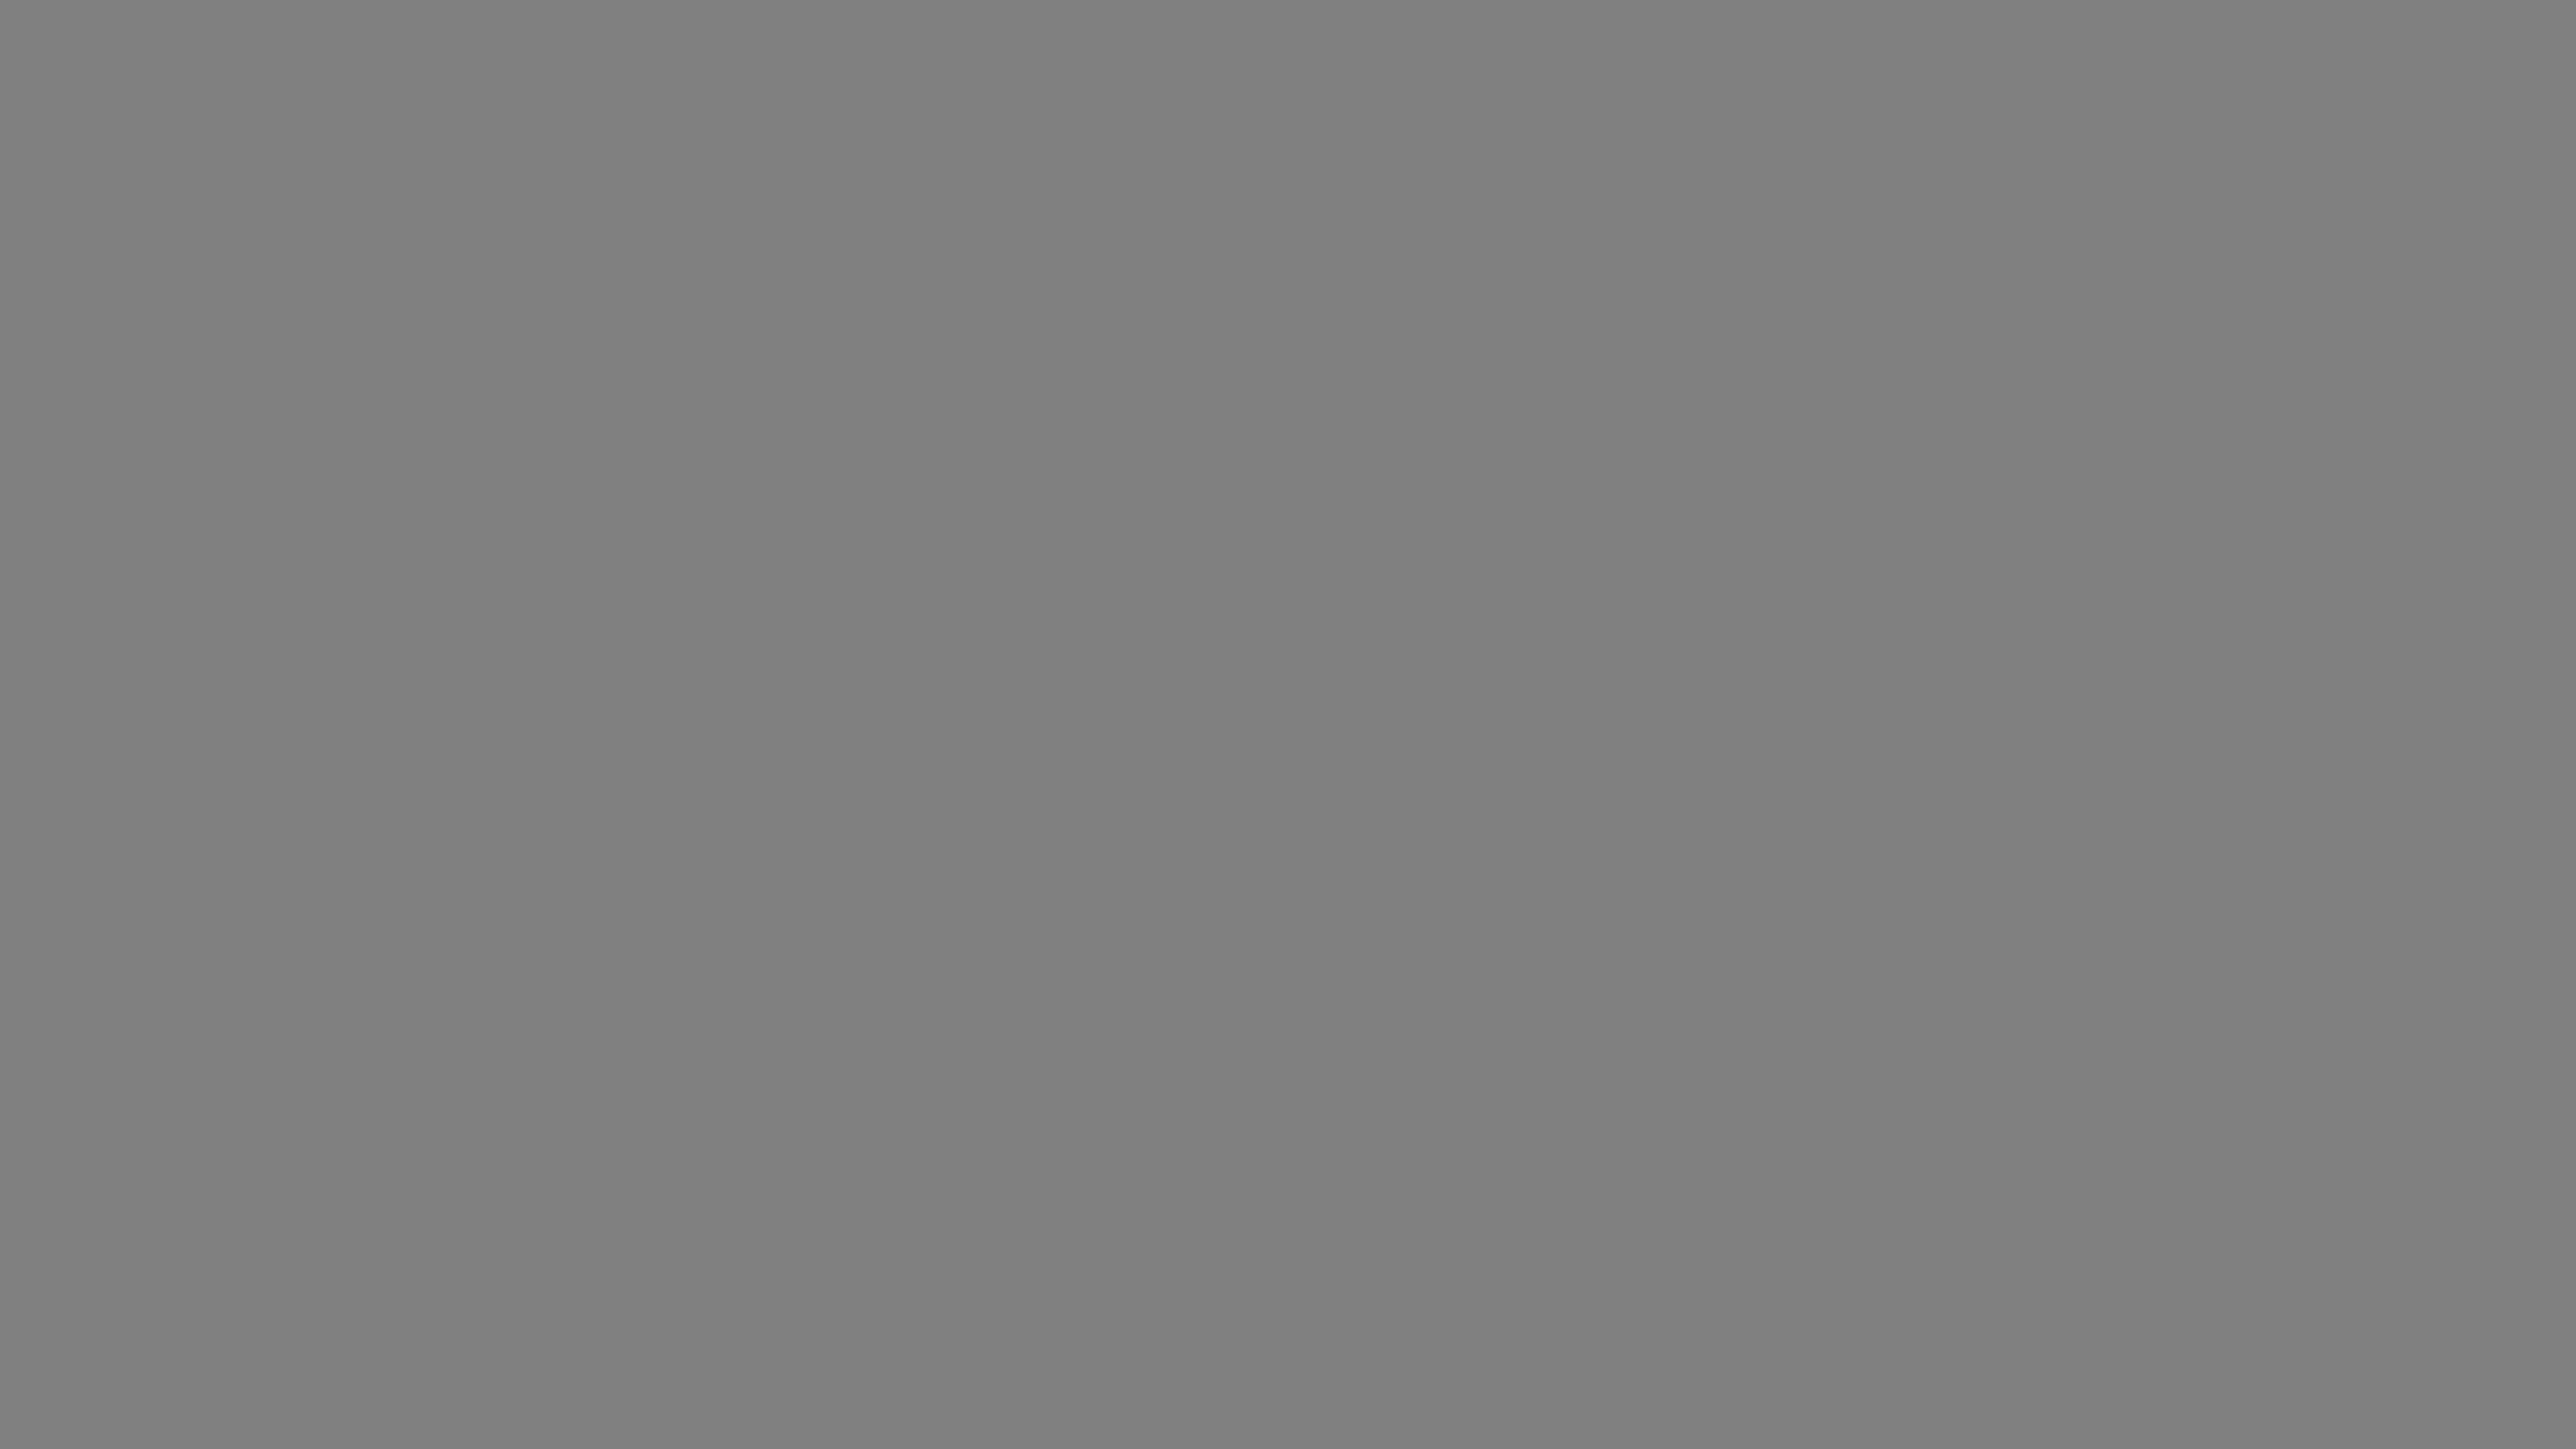 7680x4320 Gray Solid Color Background